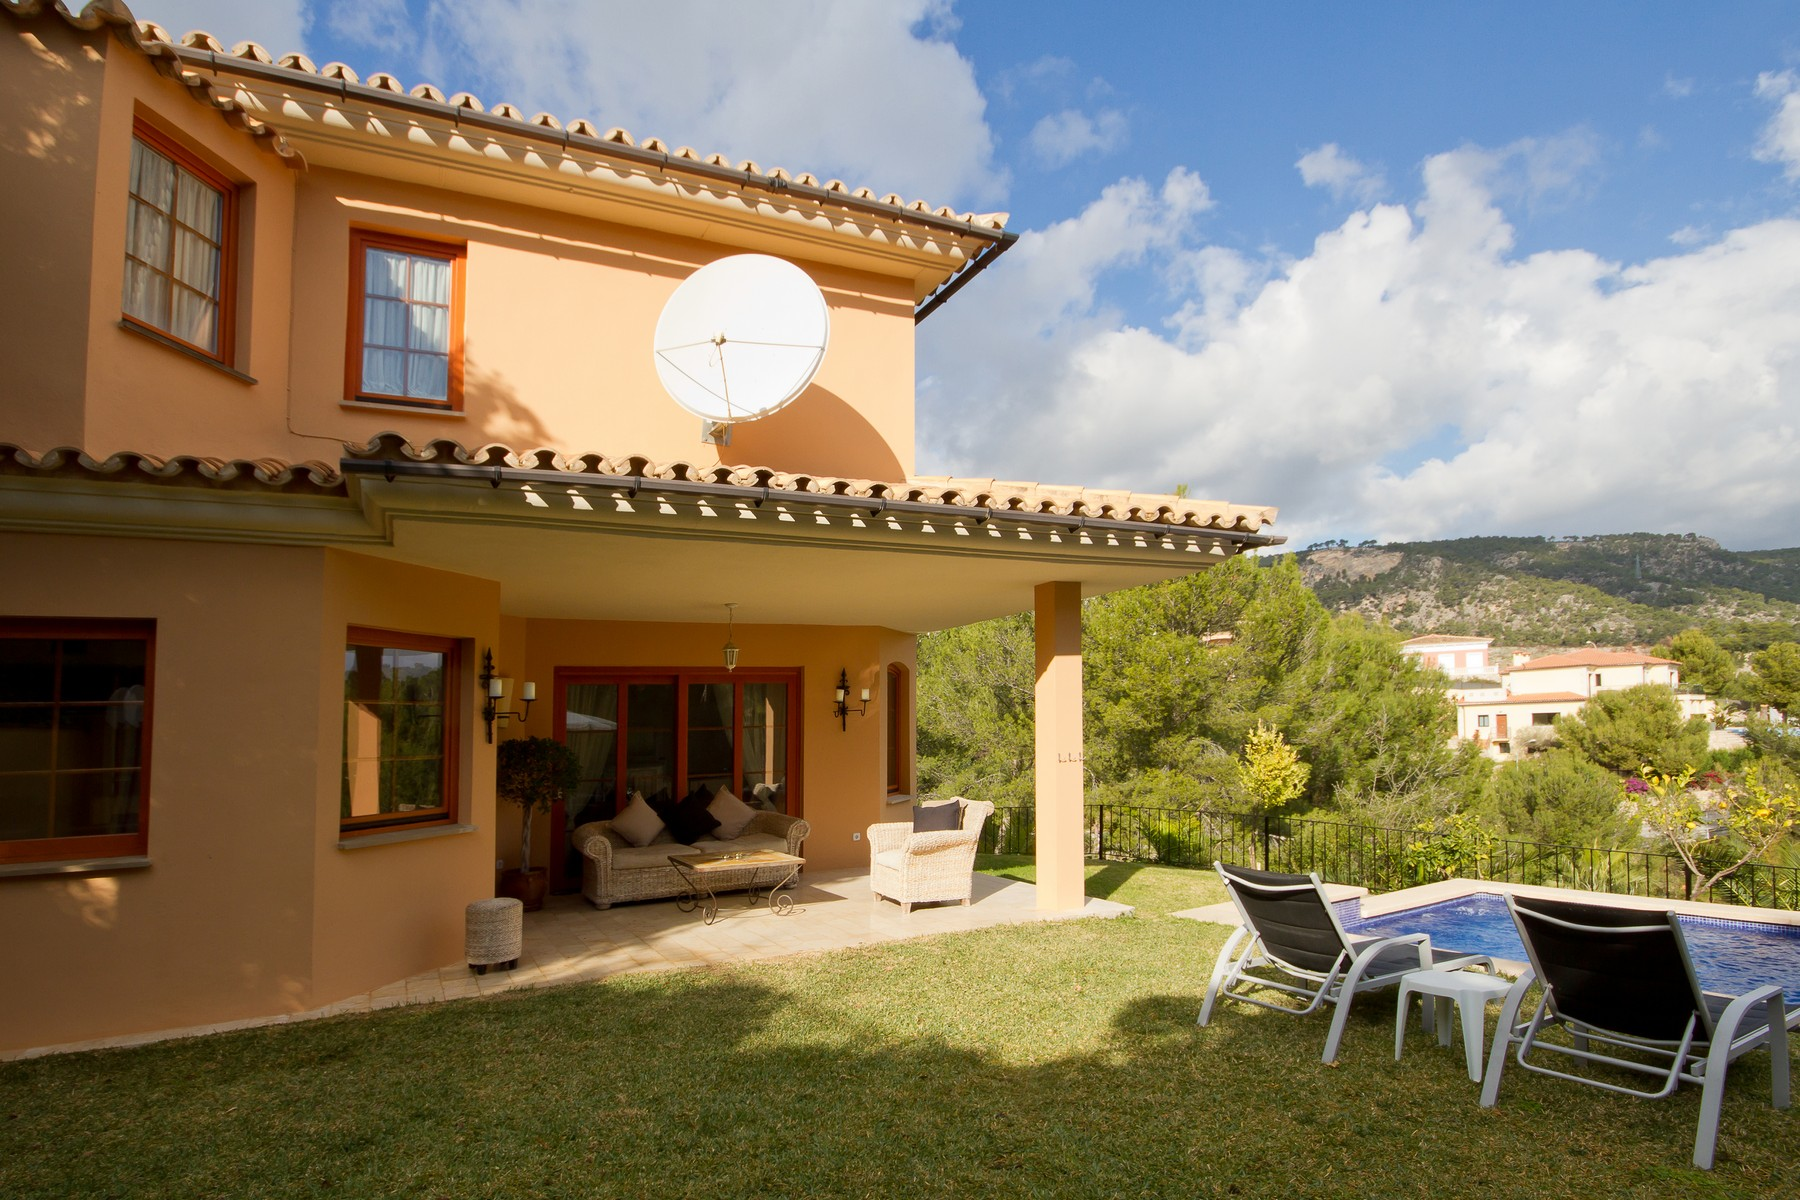 Additional photo for property listing at Luxury high quality villa in Bendinat Bendinat, Balearic Islands Spain